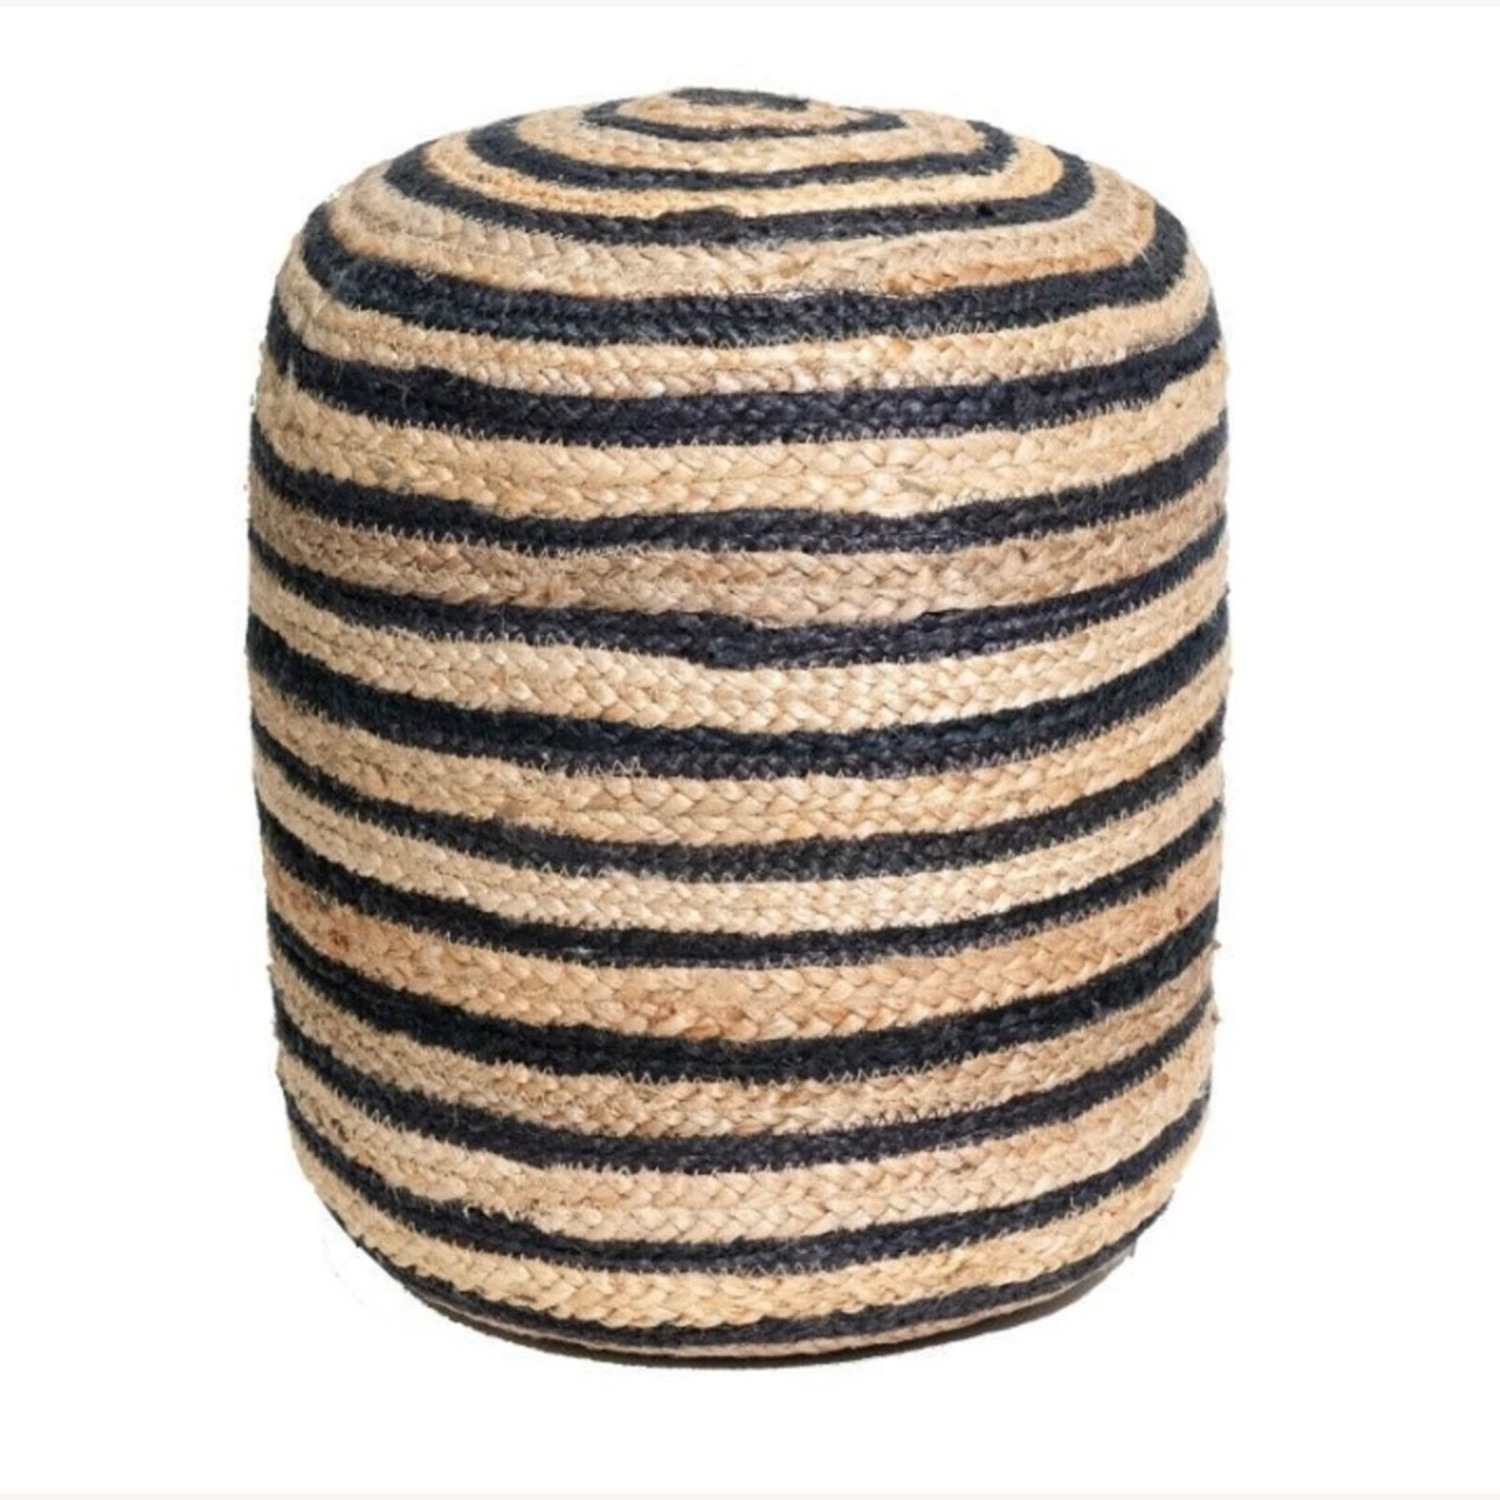 Hand Made Jutee Braided Multi-Coloured Pouf - image-5